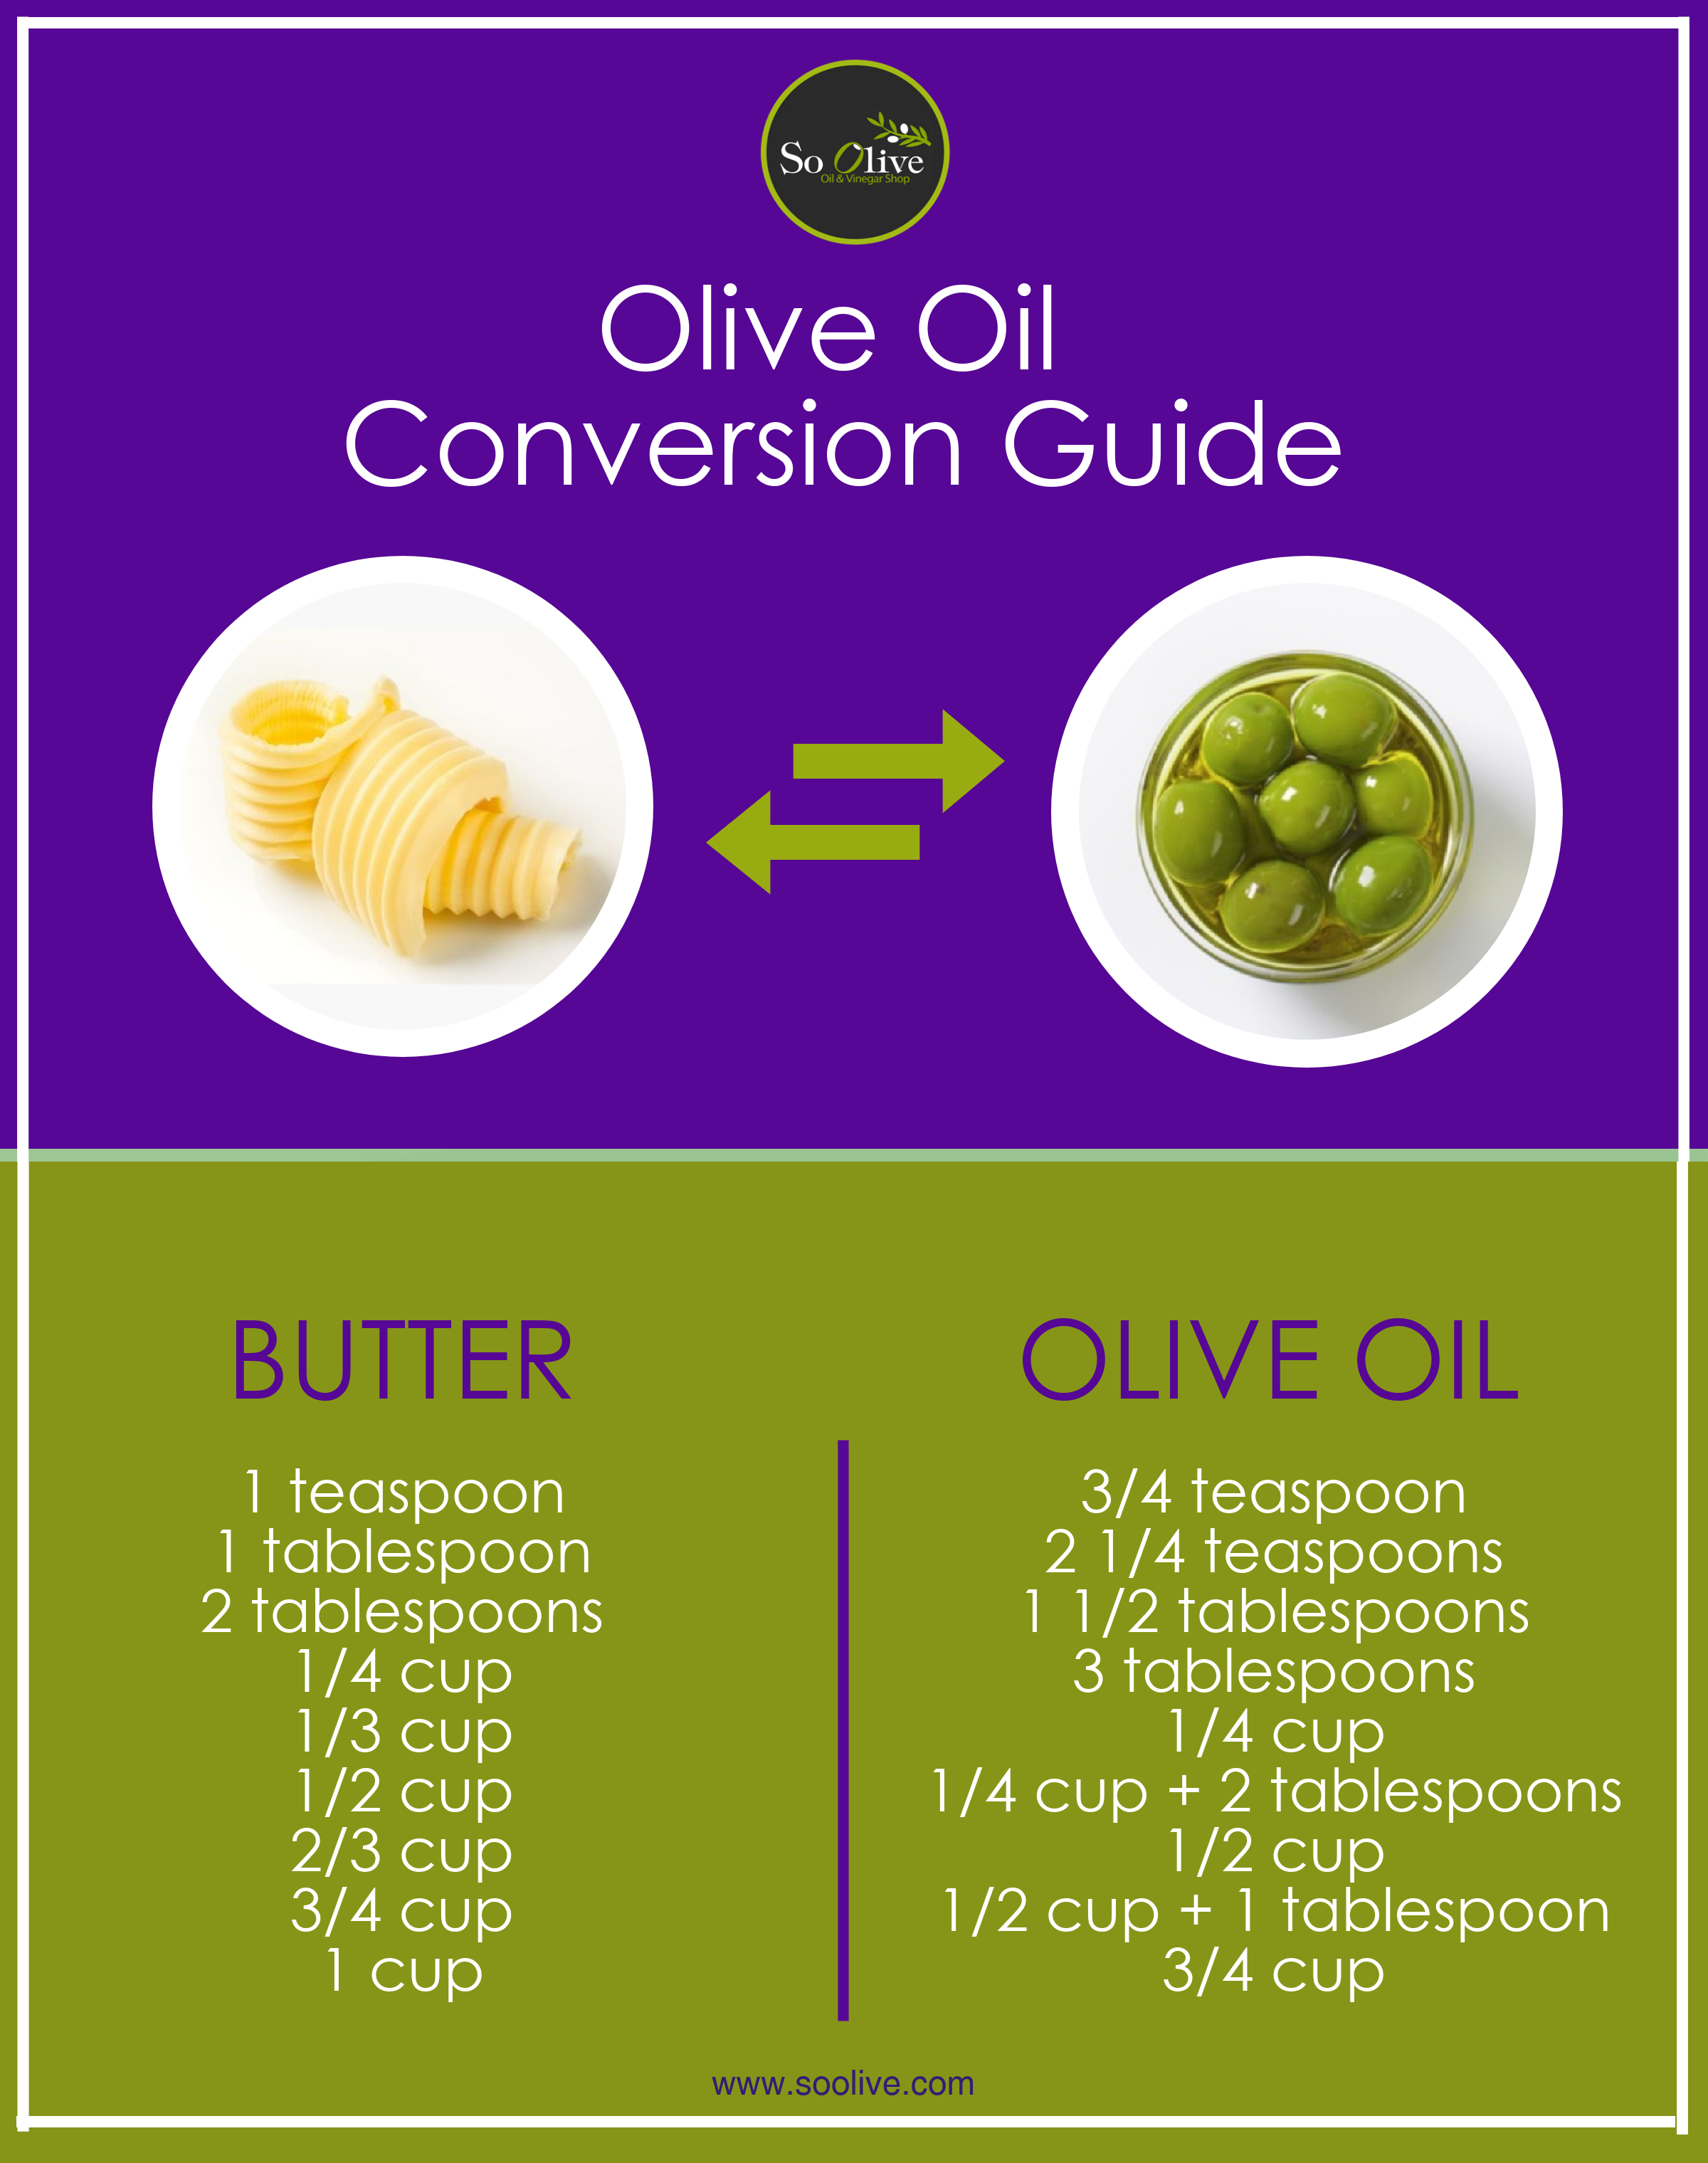 olive-oil-conversion-guide